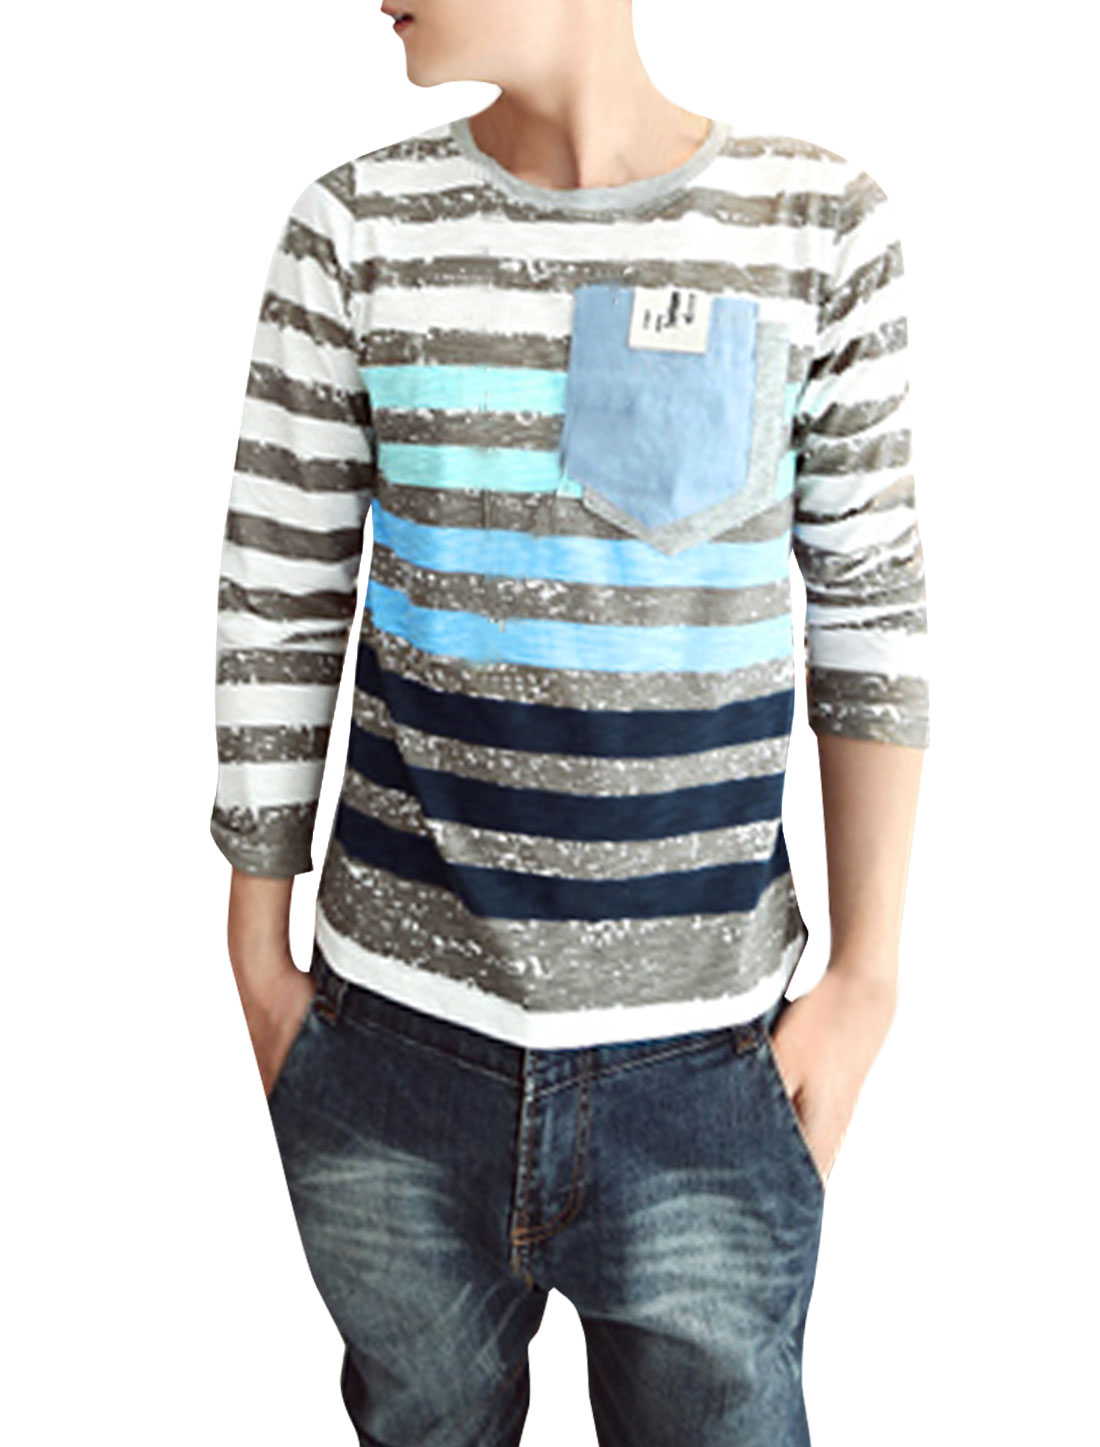 Pullover Round Neck Light Gray Blue Stripes Pattern T-Shirt for Man S